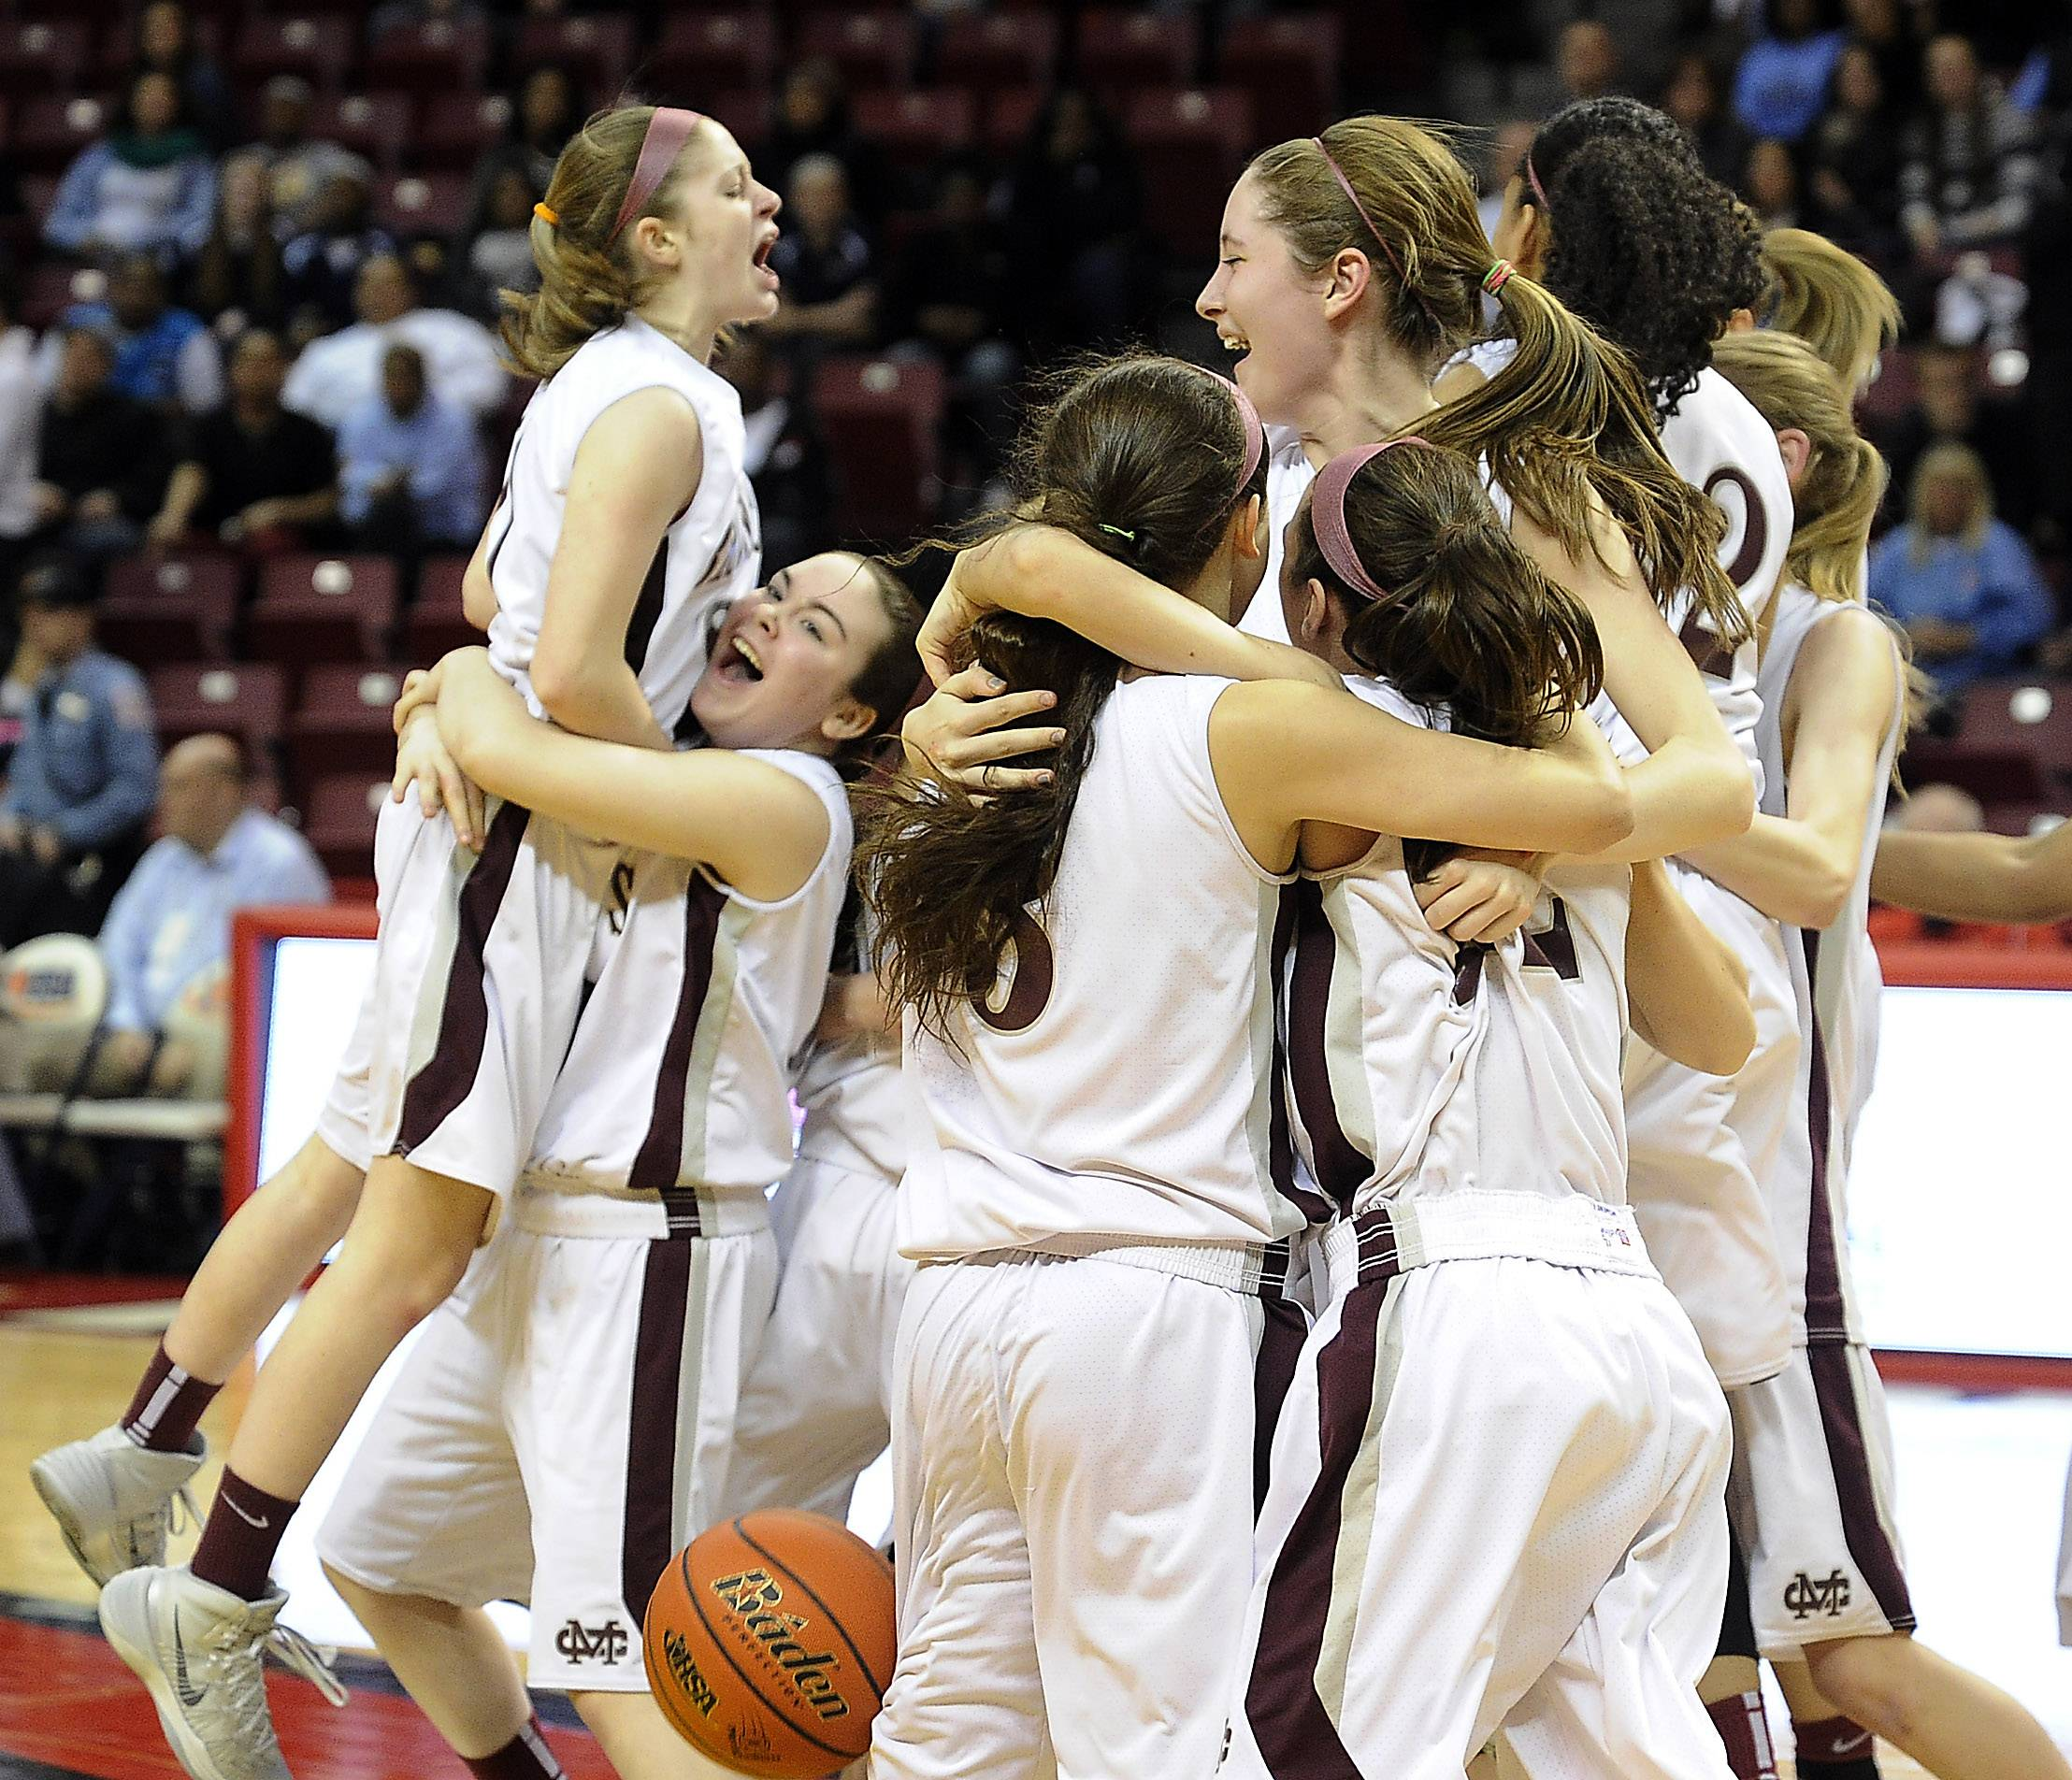 Kelly Karlis and Montini celebrate their victory after beating Joliet Catholic in the Class 3A championship game in Normal on Saturday.